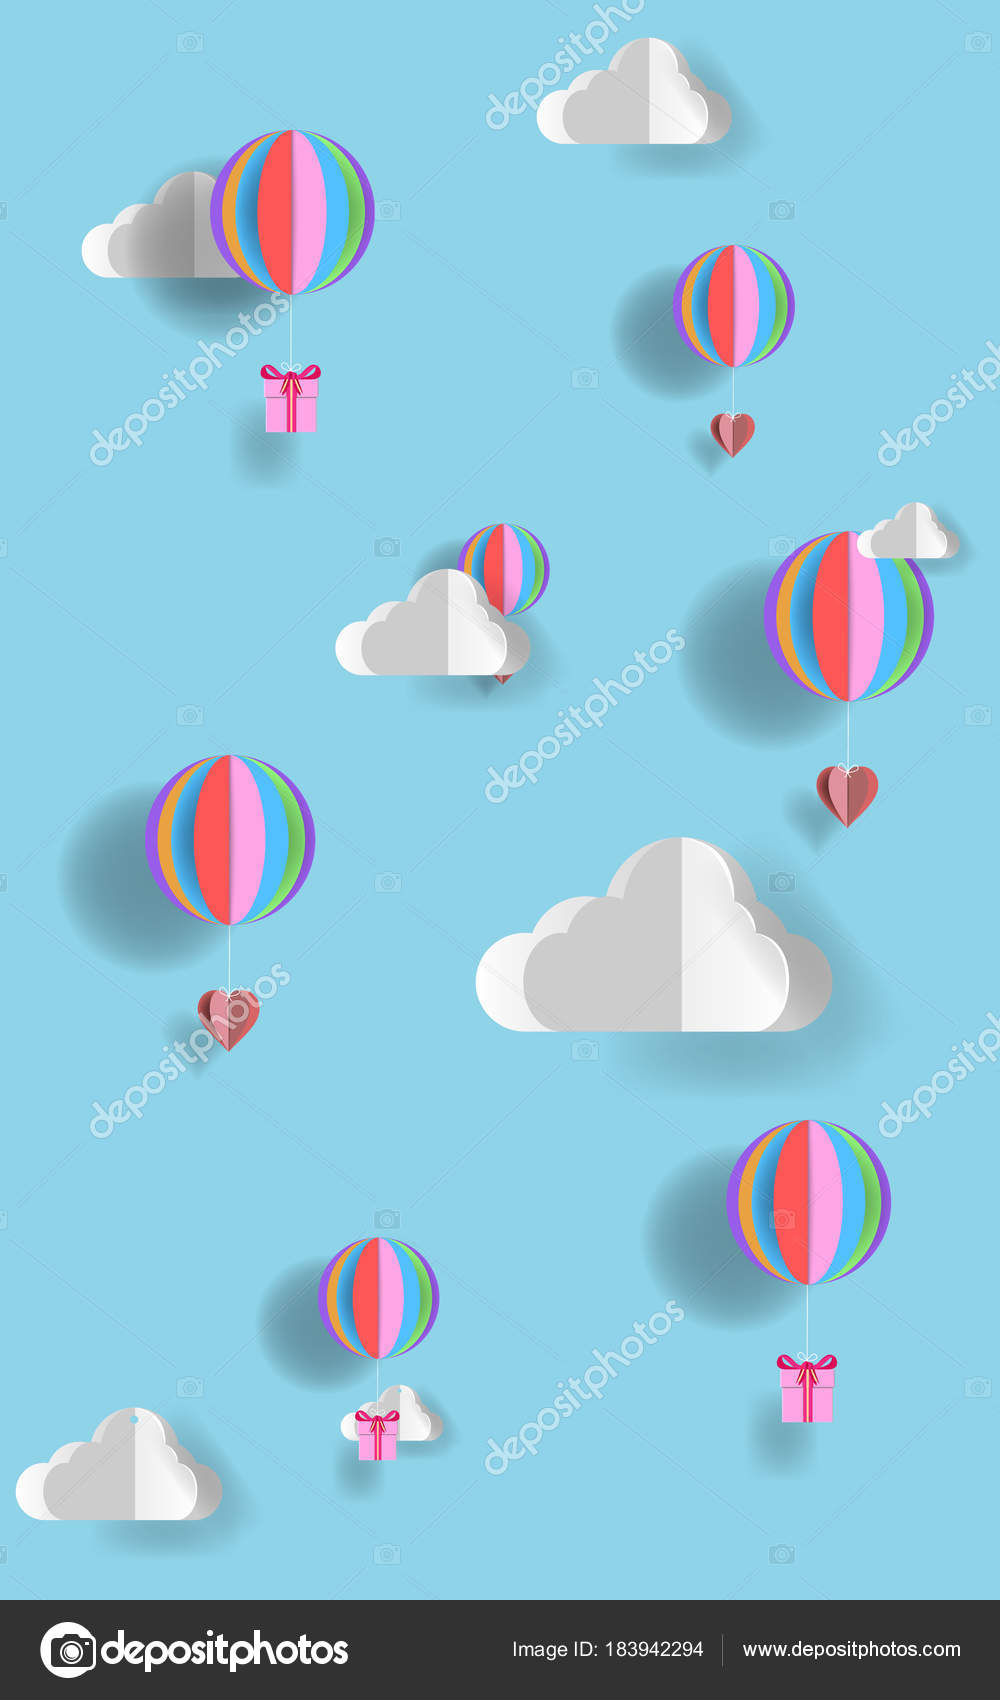 Concept love valentine day origami made hot air balloon heart concept love valentine day origami made hot air balloon heart stock vector jeuxipadfo Choice Image